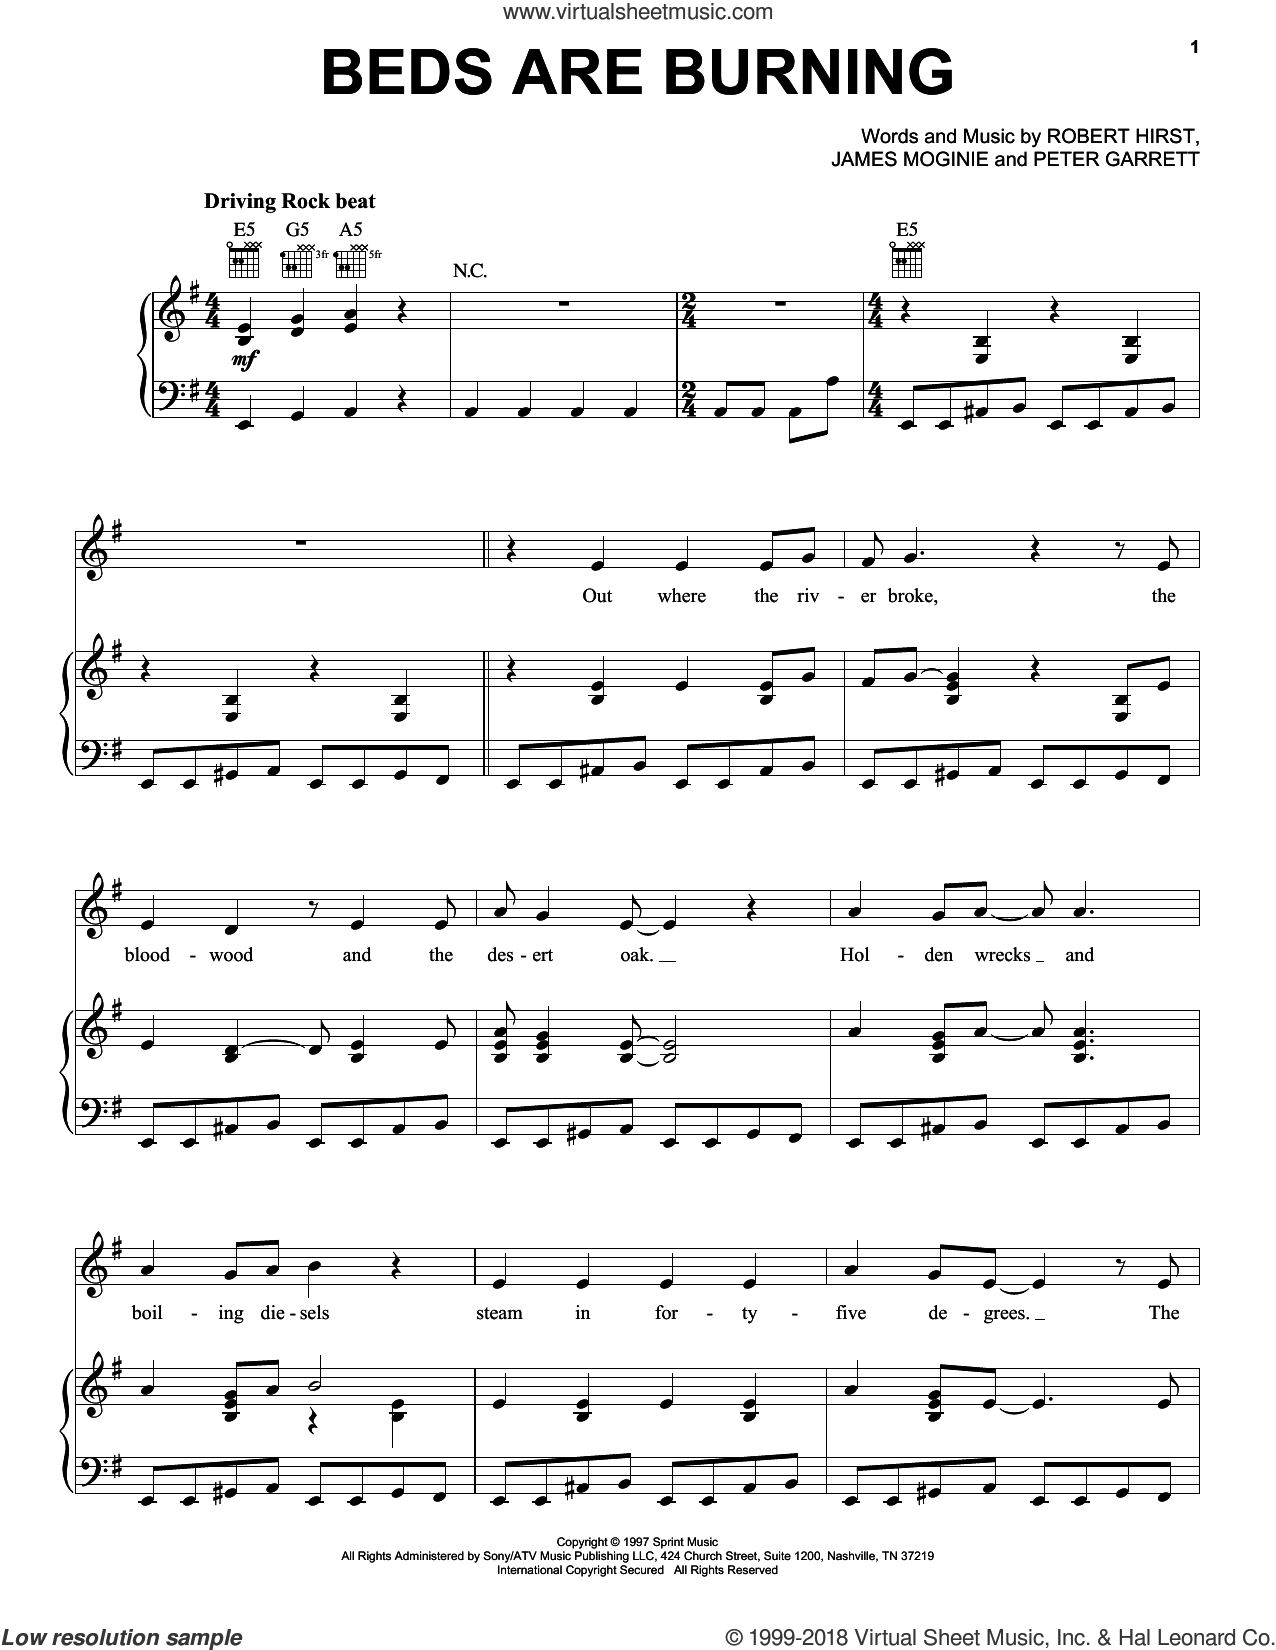 Beds Are Burning sheet music for voice, piano or guitar by Midnight Oil, Jim Moginie, Peter Garrett and Robert Hirst, intermediate skill level